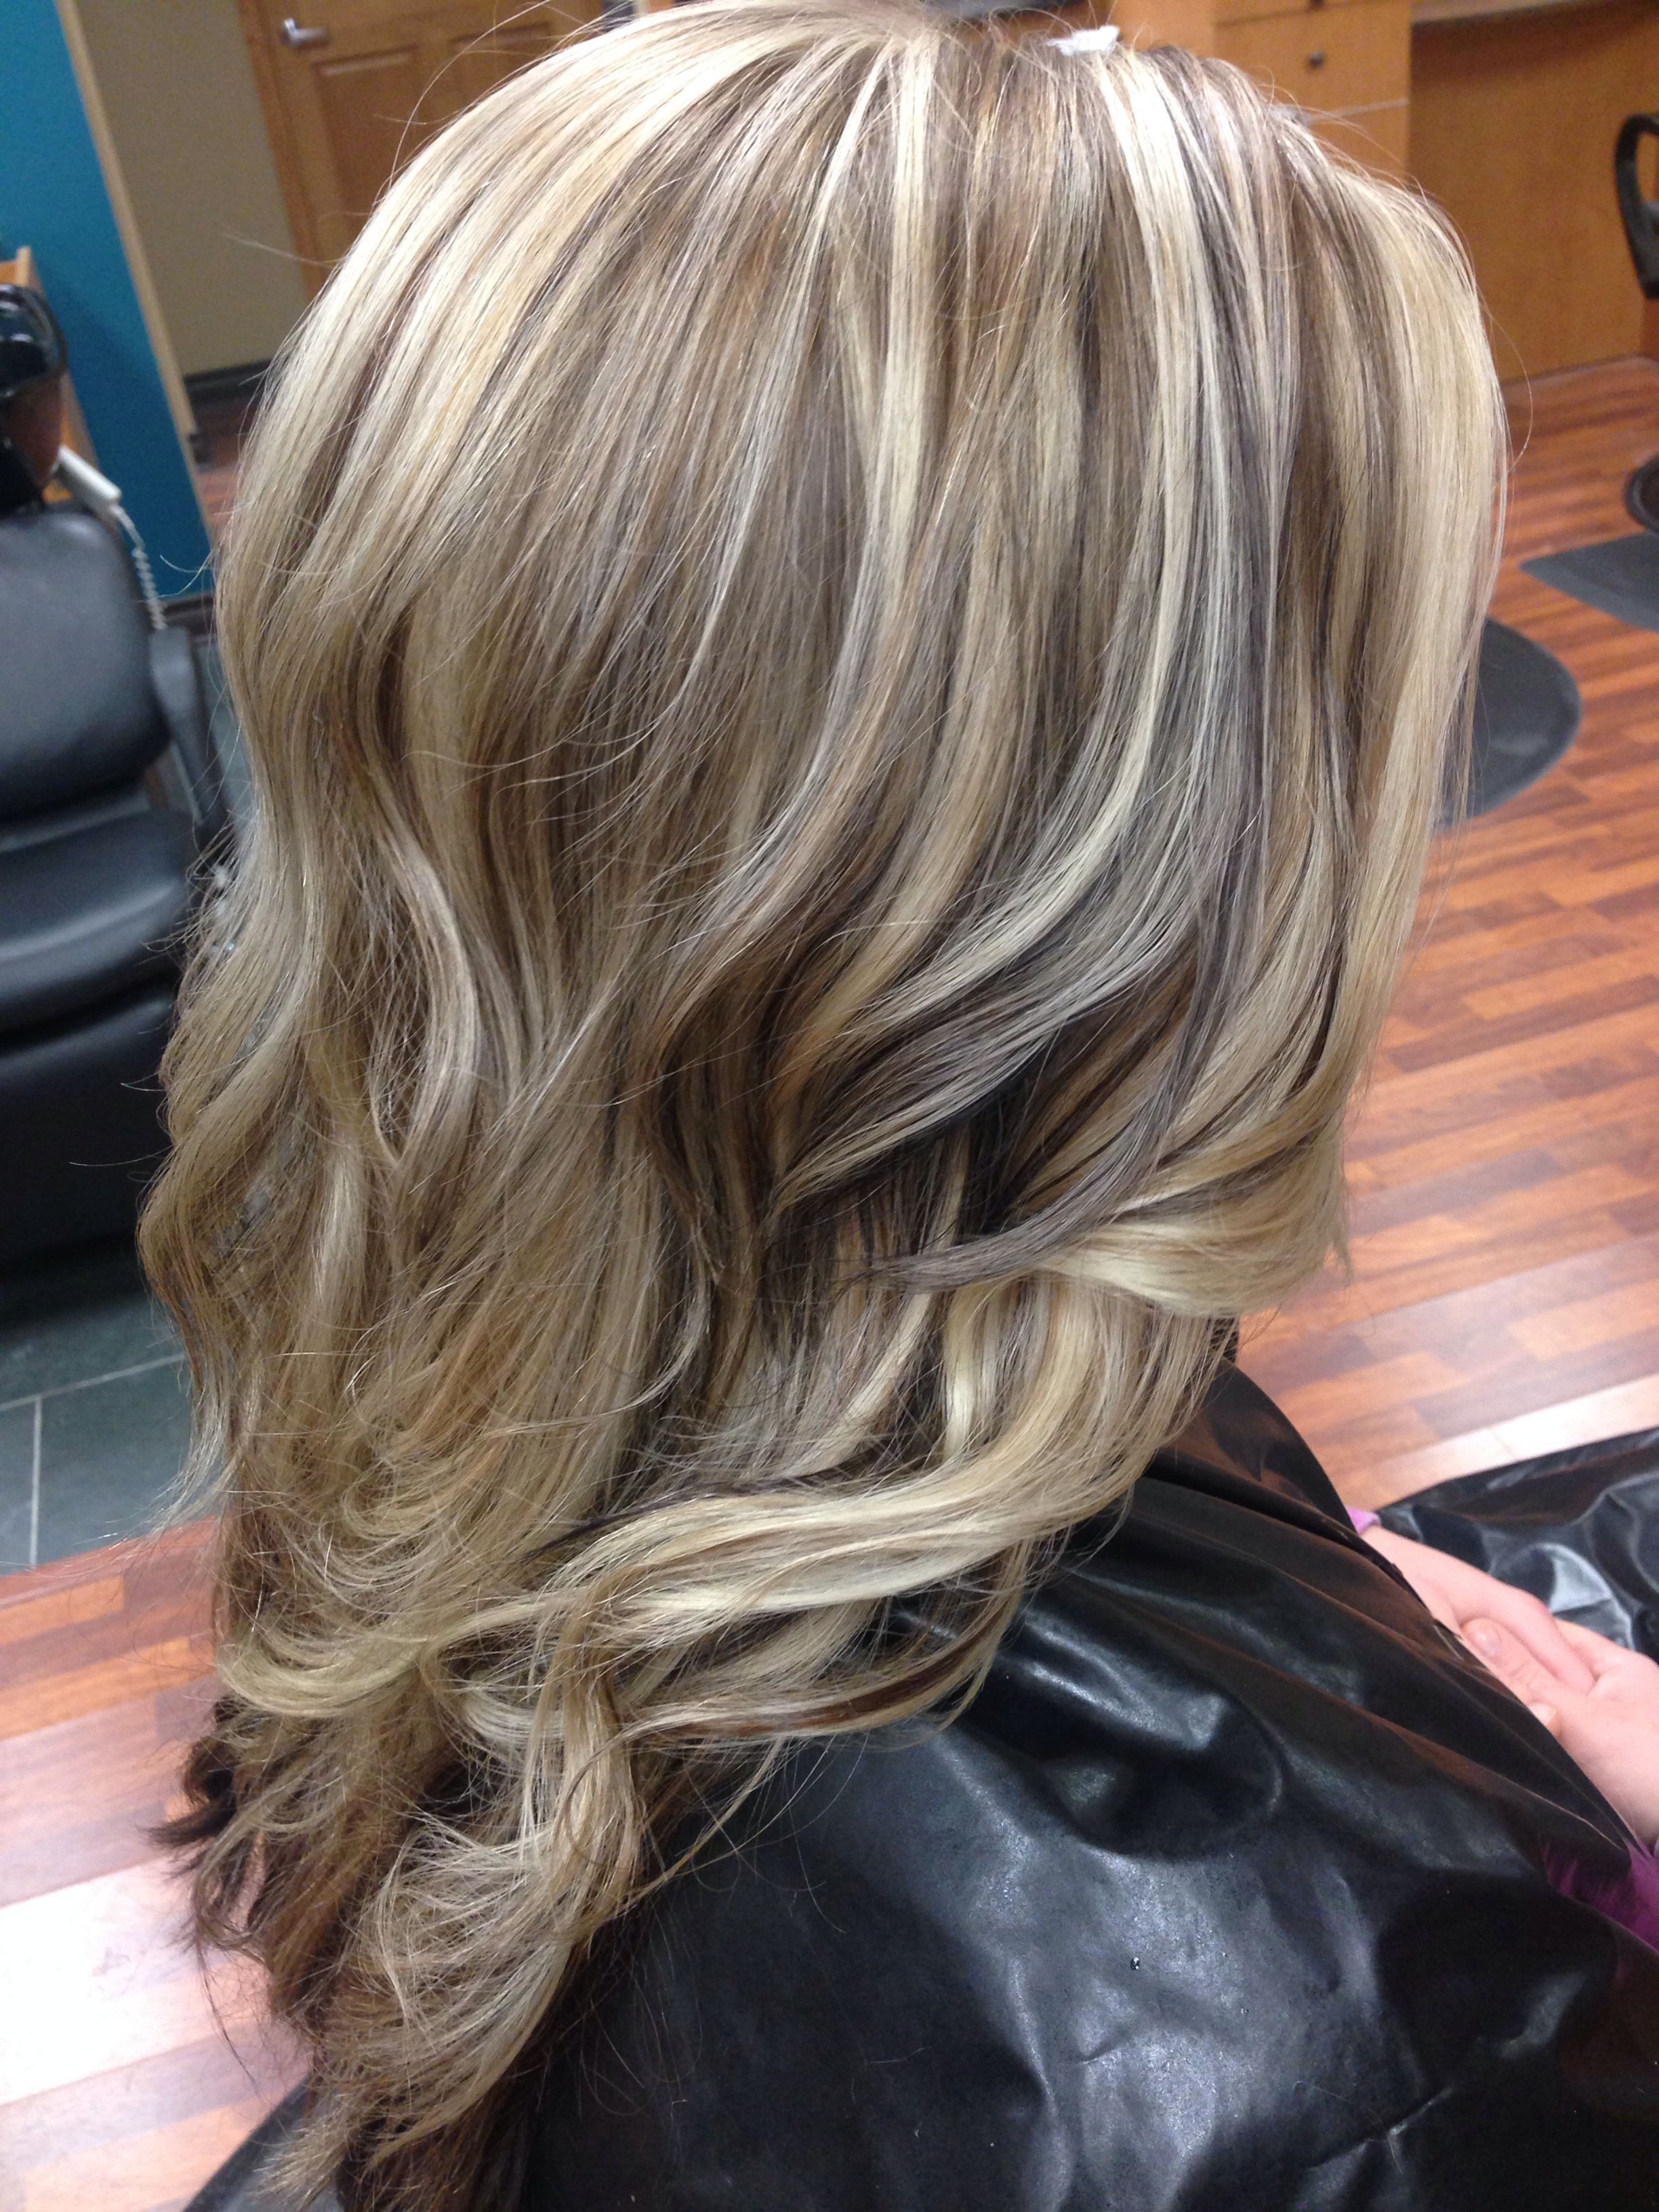 Dimensional Blonde Highlights Hair Portfolio Hair